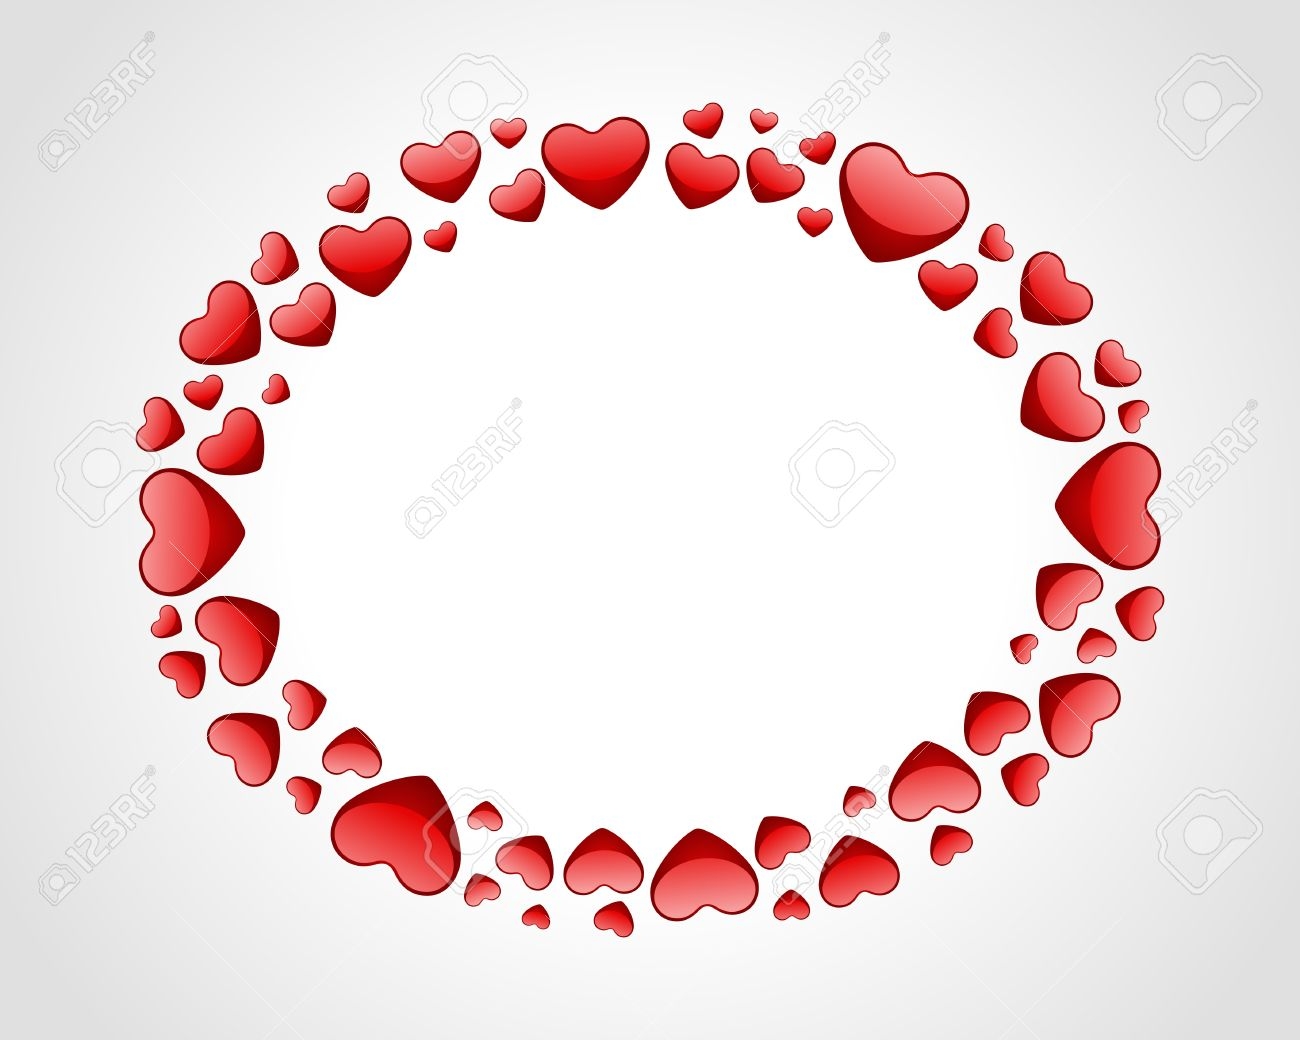 Valentine Day Card With Hearts Frame Vector Background Royalty Free ...